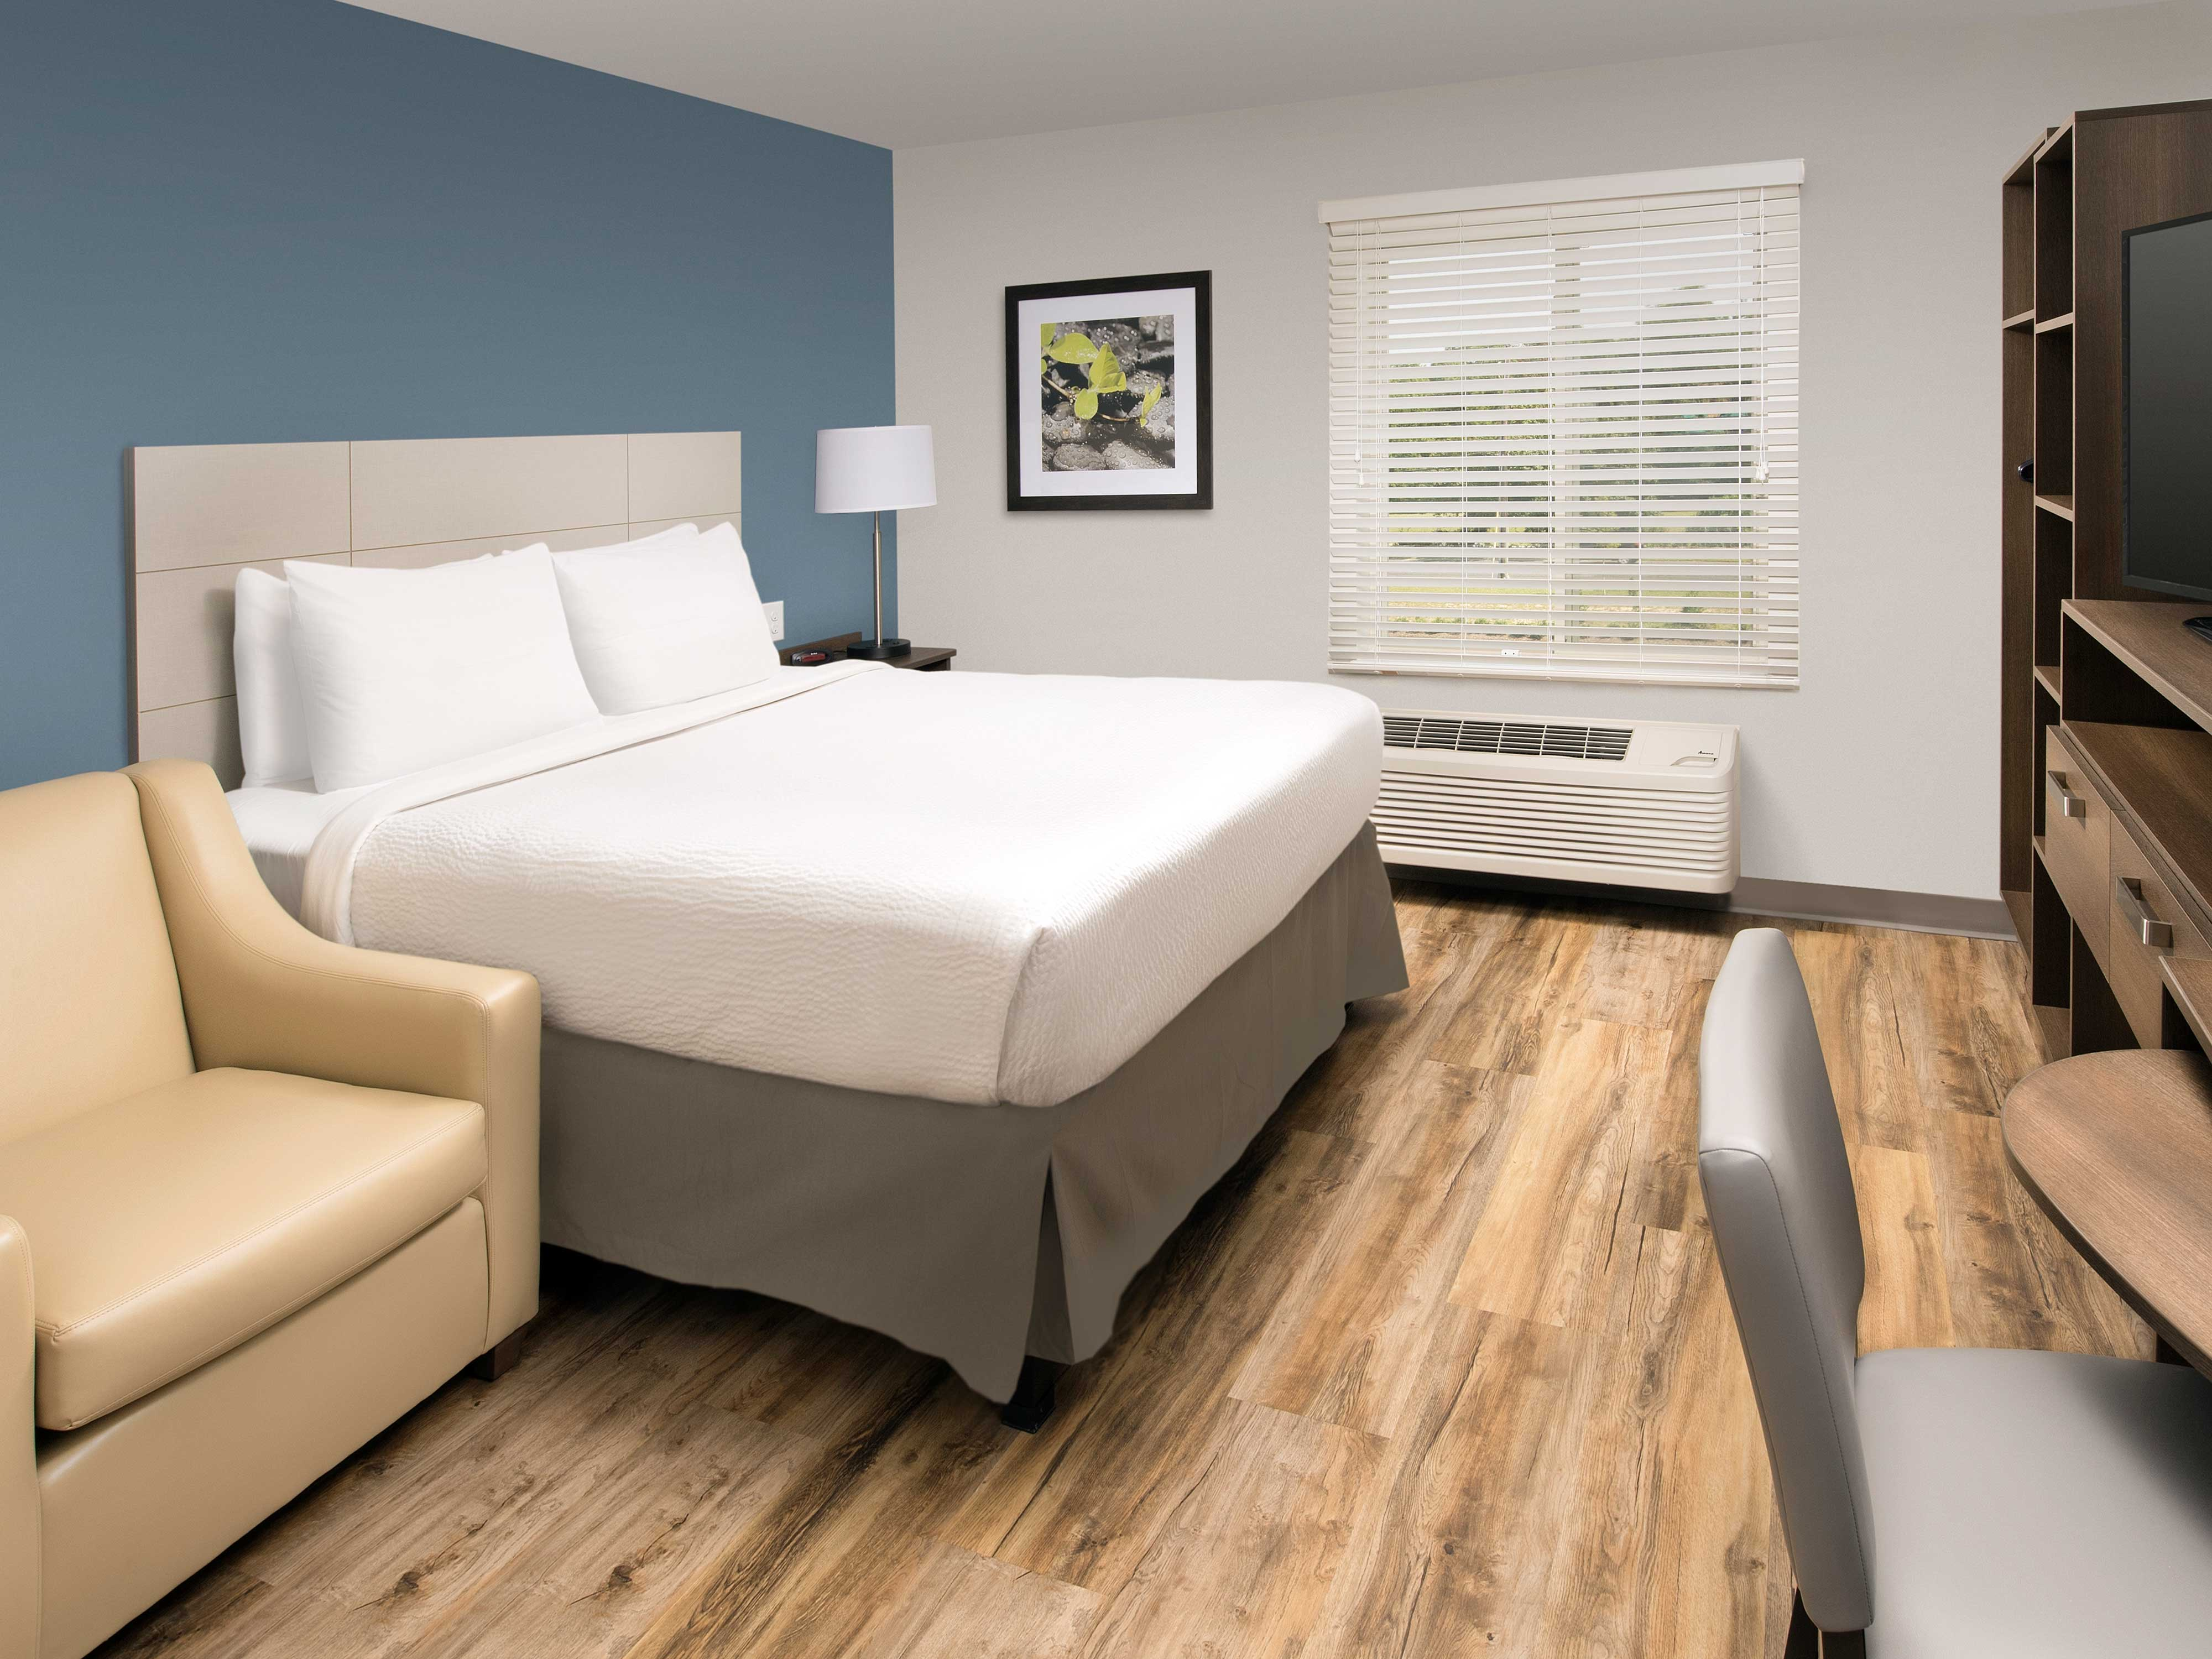 WoodSpring Suites Cherry Hill image 2